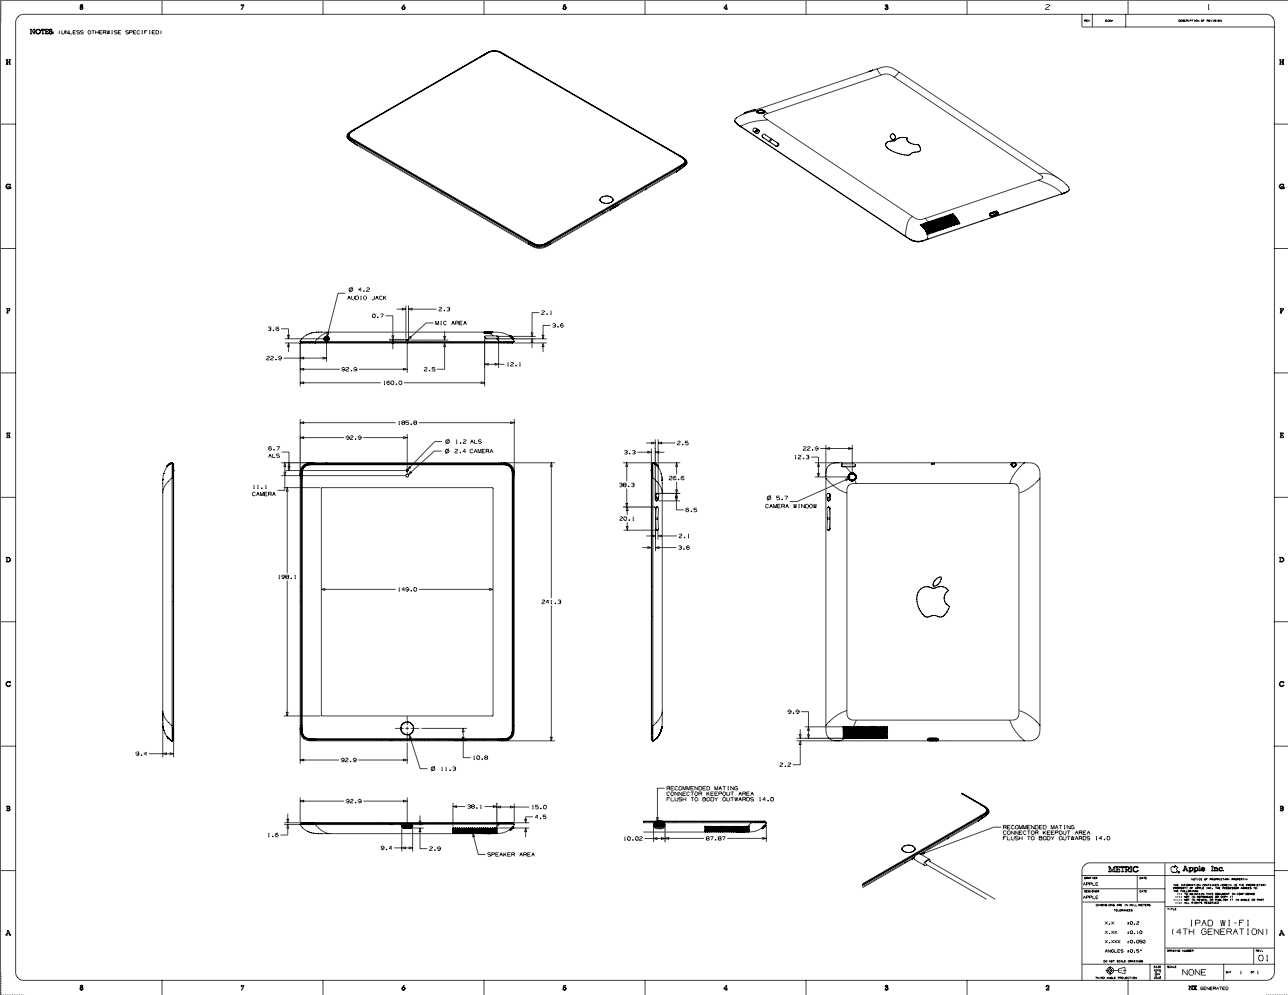 Full ipad mini and fourth generation ipad schematics blueprints now guides ios devices malvernweather Choice Image